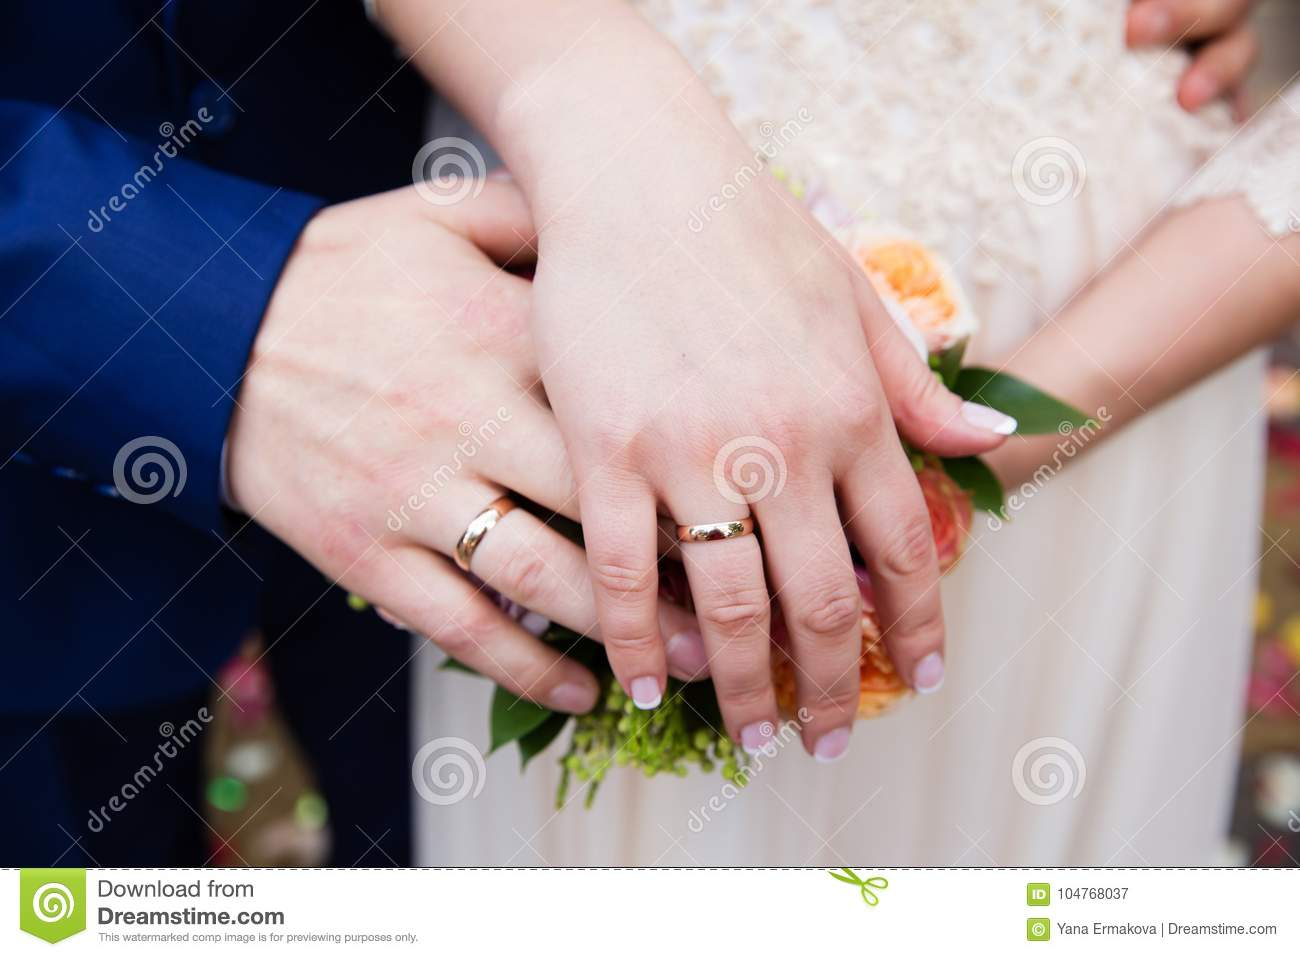 Bride And Groom Hands With Wedding Rings Stock Image - Image of ...